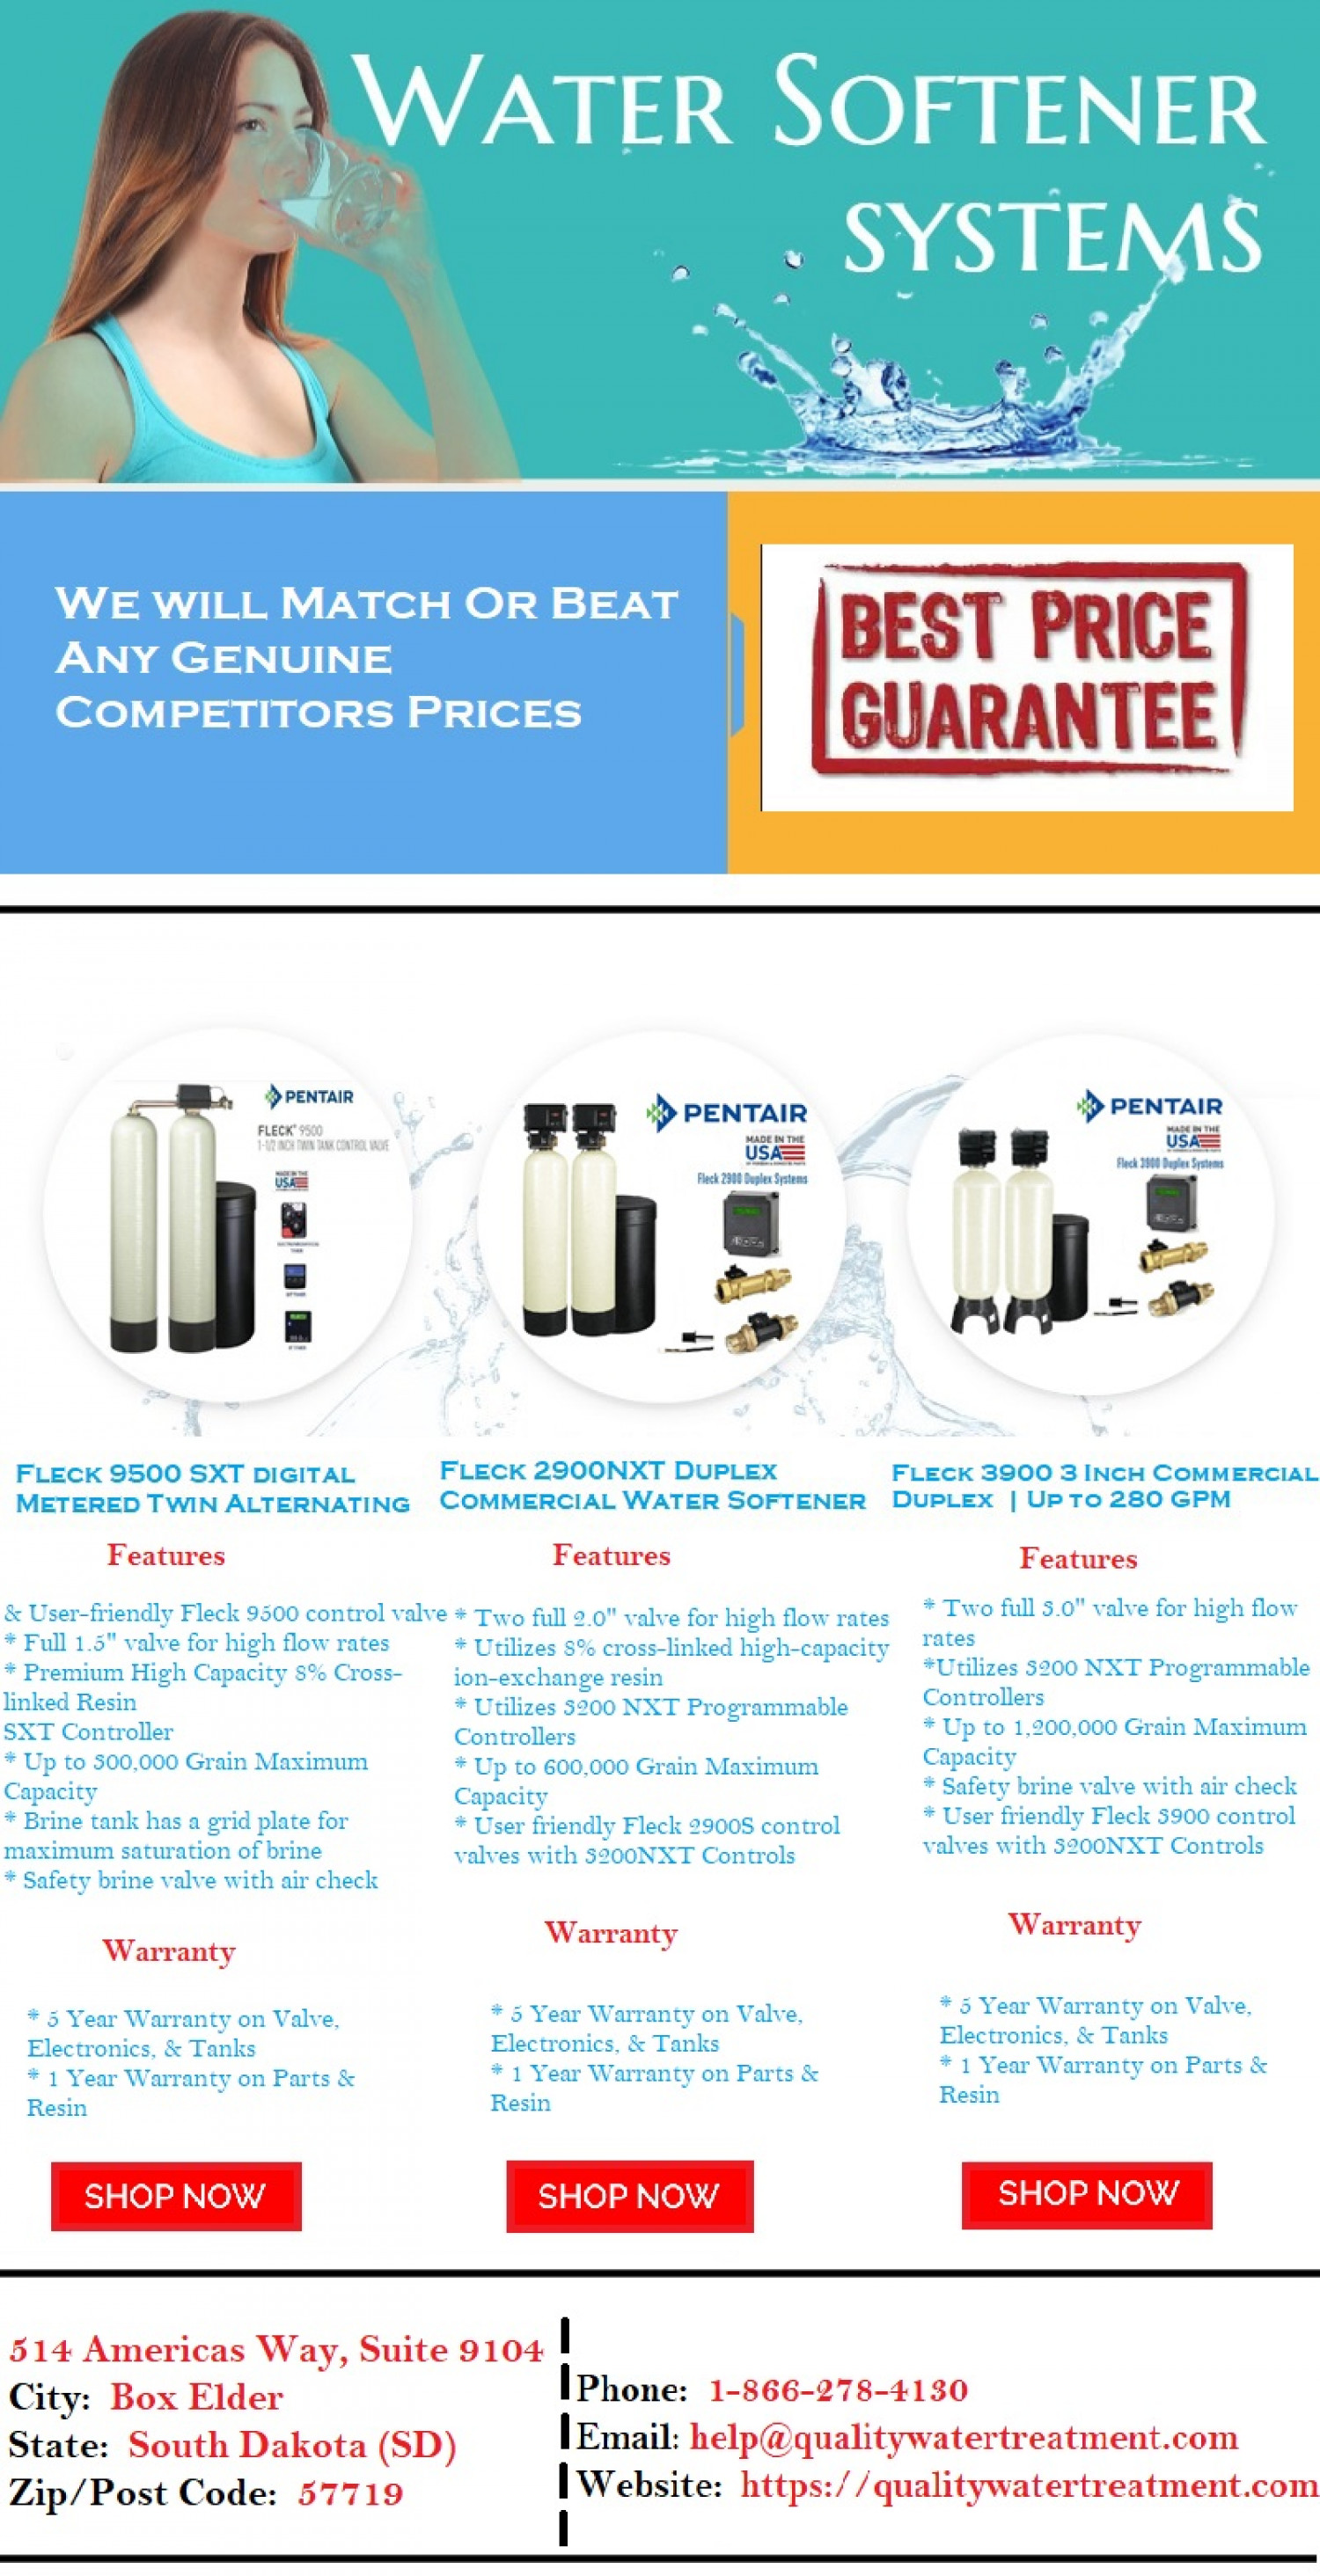 Commercial Water Softener System Infographic